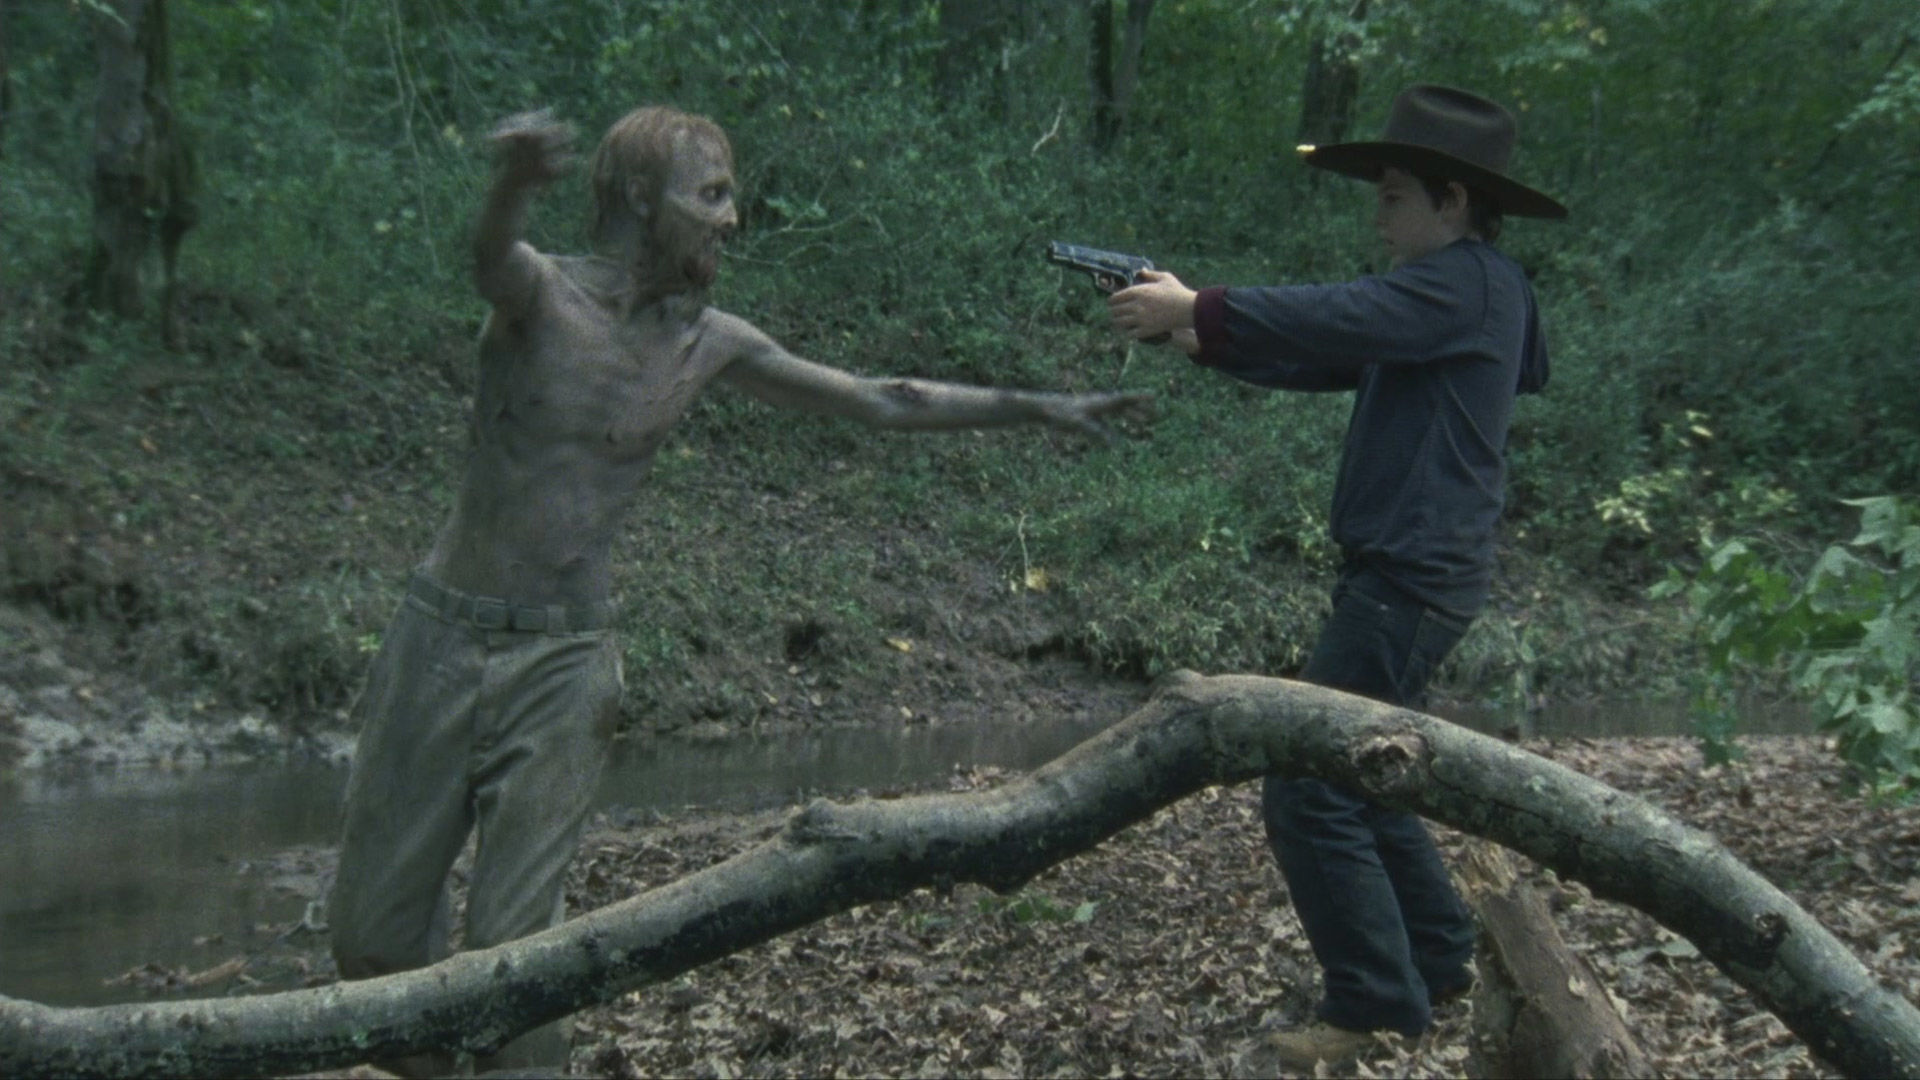 Rick sides with Shane causing Dale to worry that the group is losing its humanity; Carl's actions have unintended consequences.